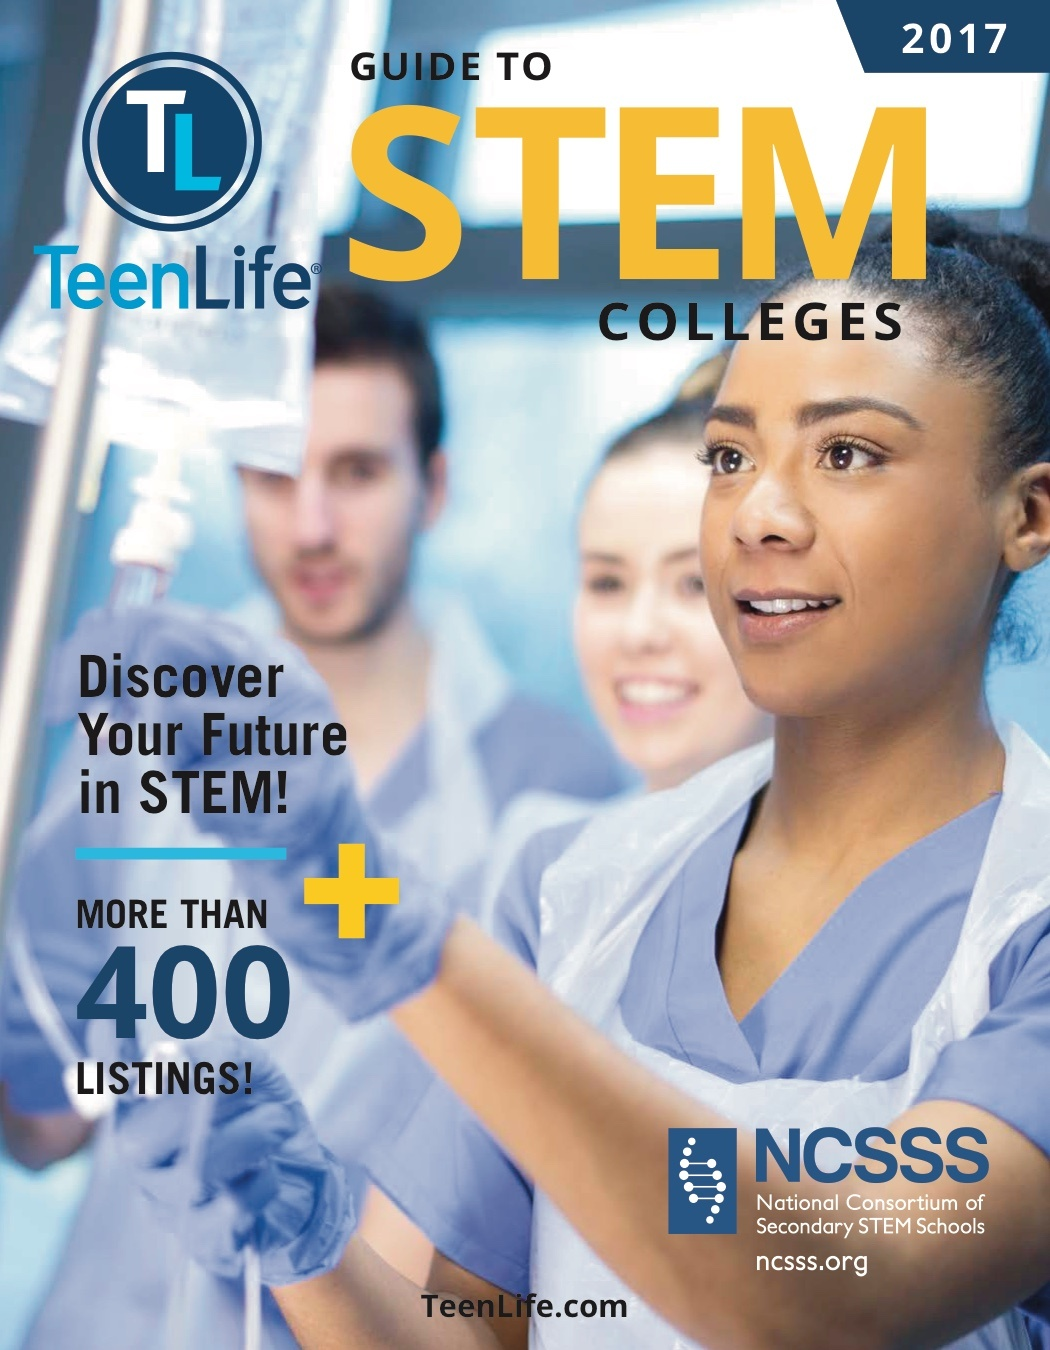 Guide to STEM Colleges & Programs - Spring 2017